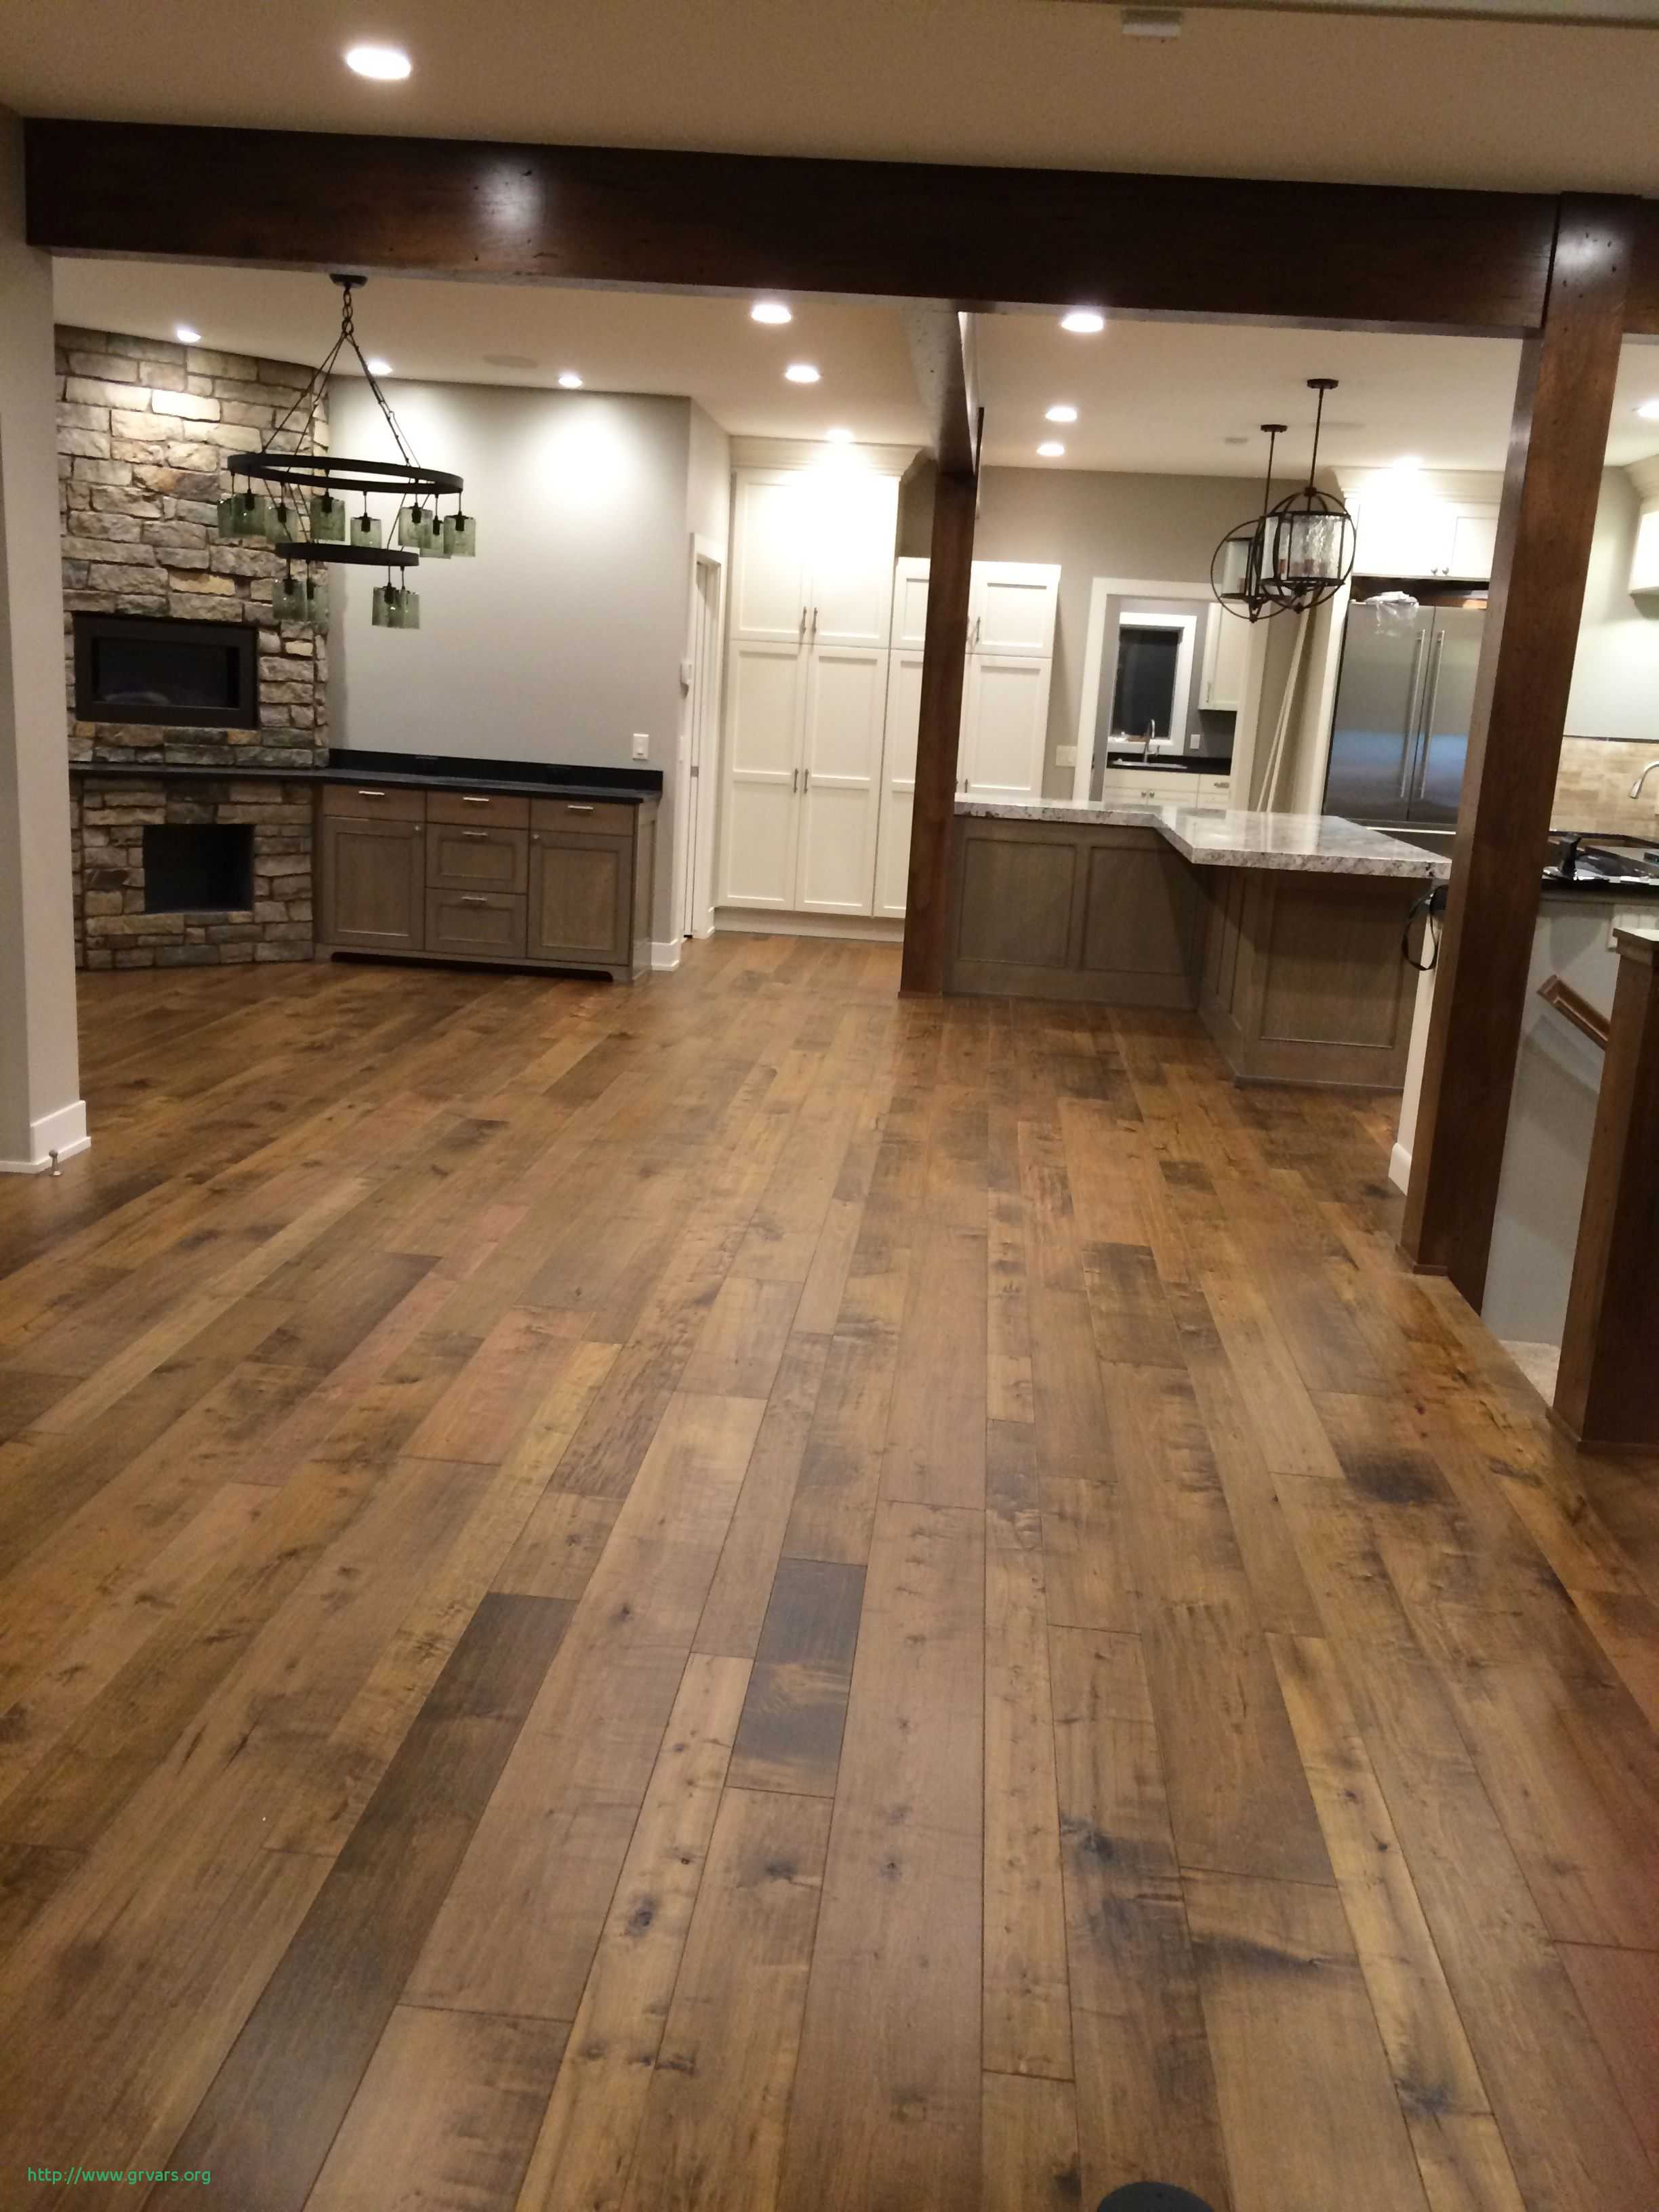 hardwood flooring zero voc of 17 meilleur de hardwood floor installers toronto ideas blog with 17 photos of the 17 meilleur de hardwood floor installers toronto